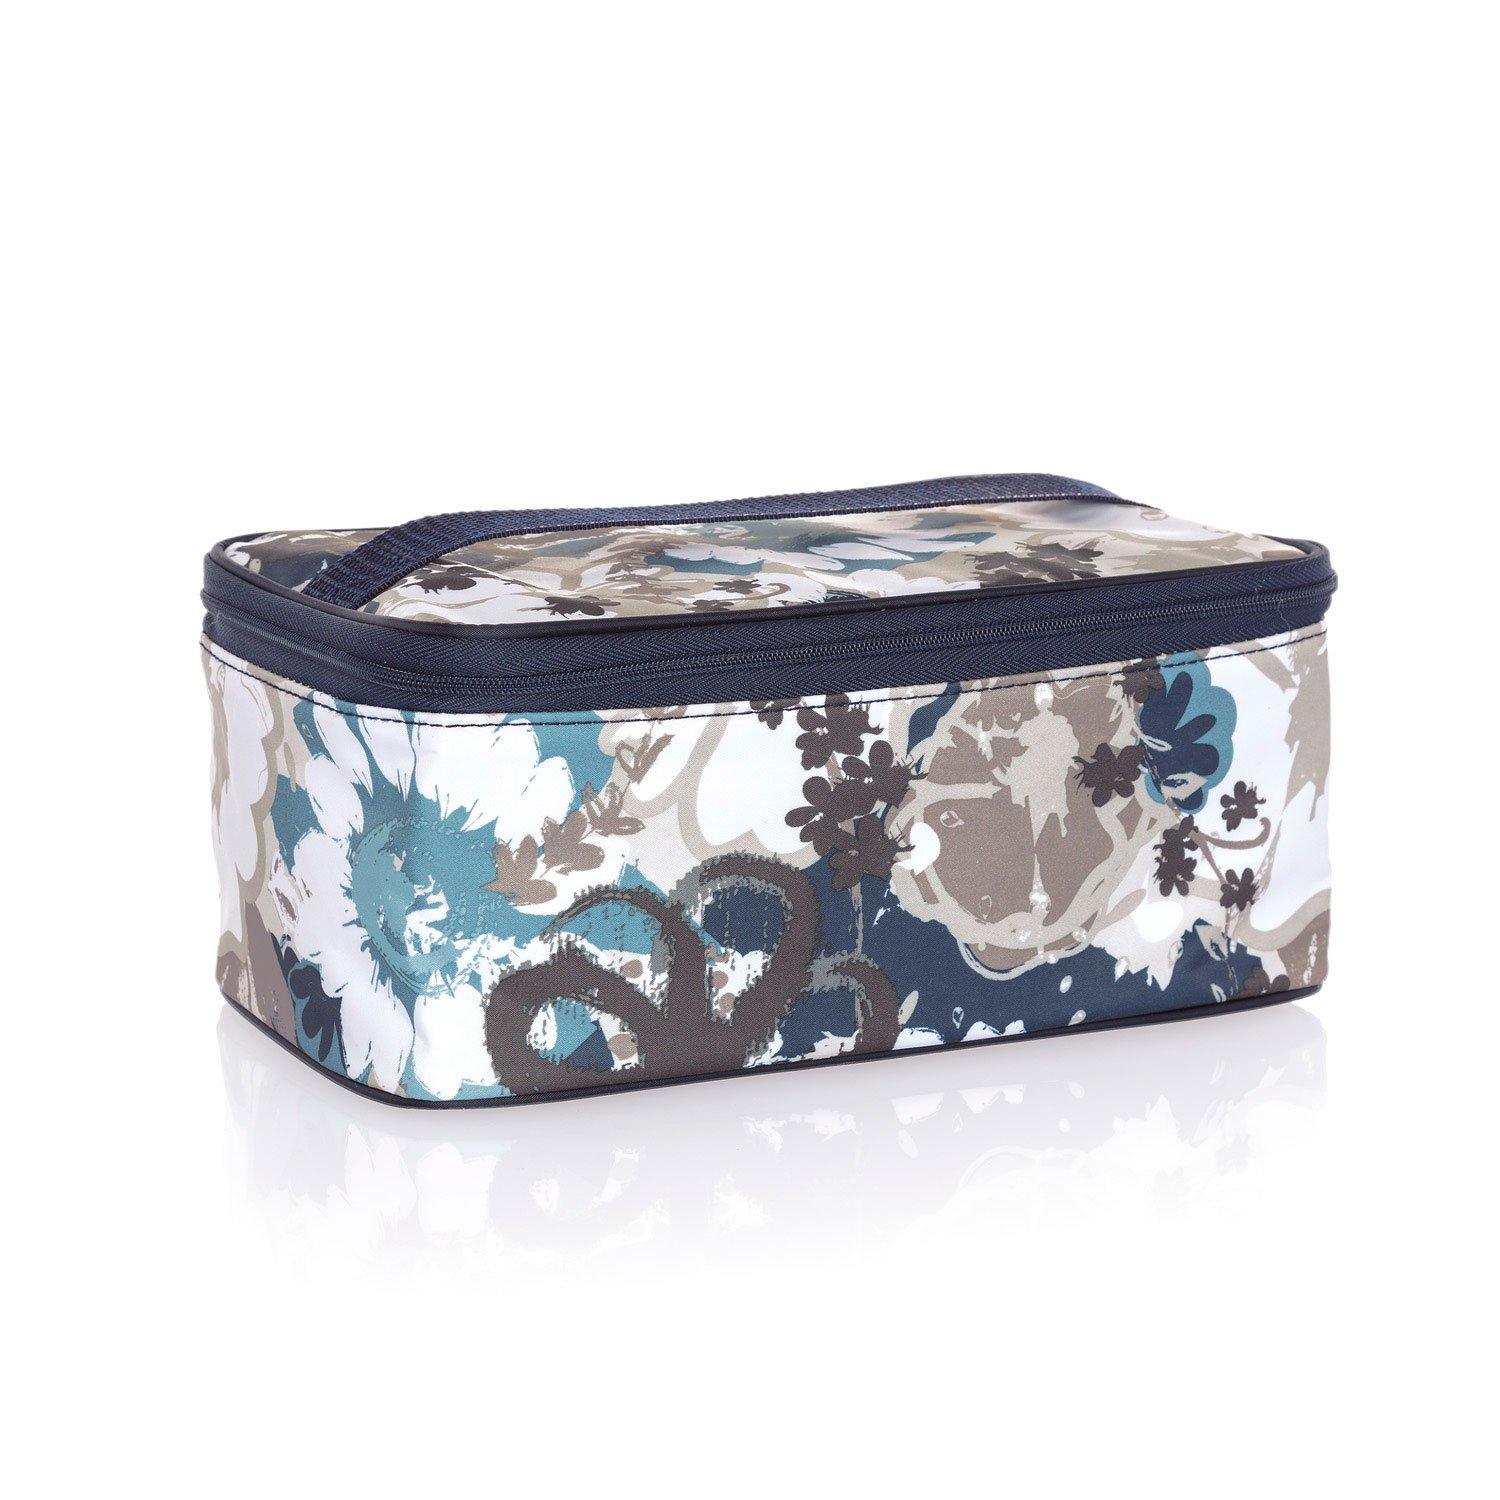 Thirty One Glamour Case in Brushed Bloom - No Monogram - 6121